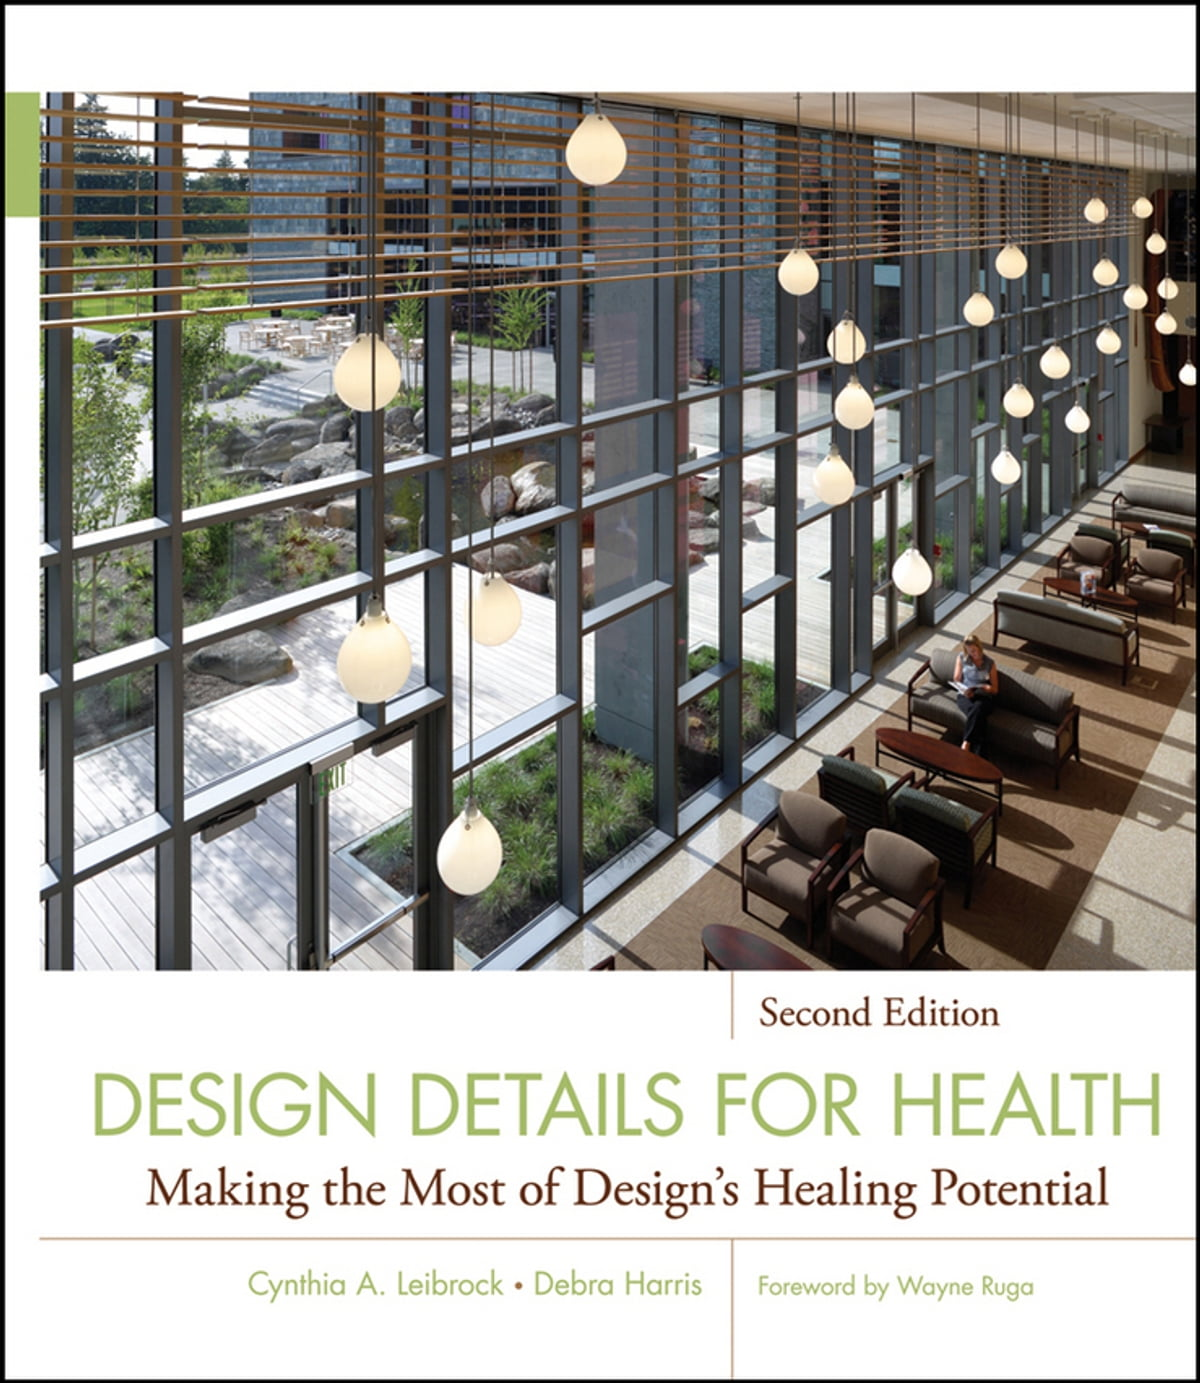 Design Details For Health Ebook By Cynthia A Leibrock 9780470926840 Rakuten Kobo United States